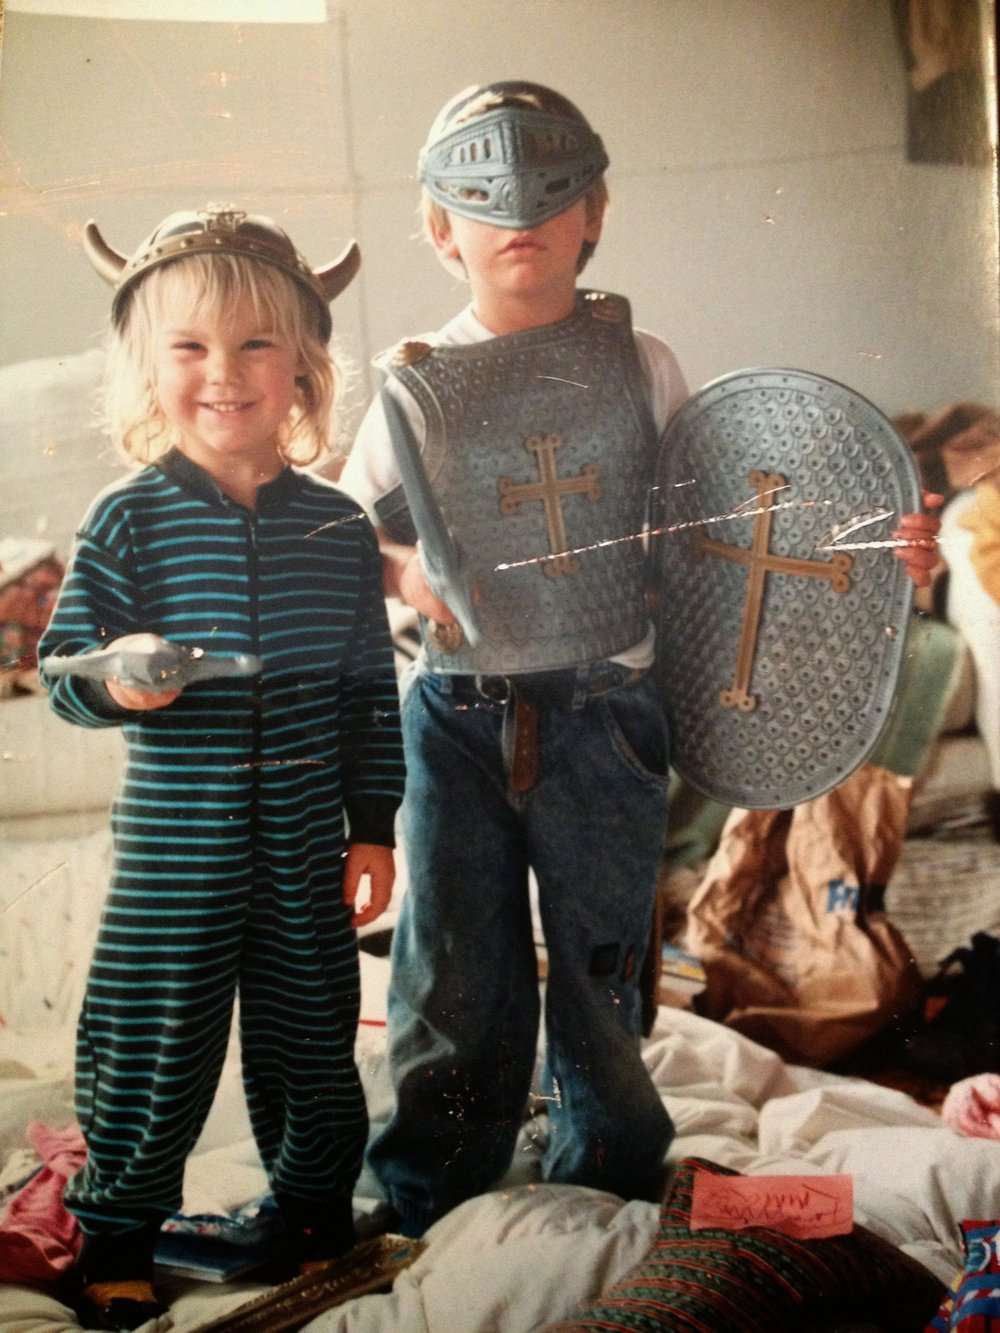 My story starts in the 90's (I'm the one with the sword). -  I'm a little girl, living in a cabin in the woods in Southern Oregon, and all I want is to be a writer…and to have a puppy. So I grow up and I go to school in Boston to become a writer. Then I realize writers don't make any money.I try to adjust to the writing lifestyle by eating lots of ramen and refried beans. I realize I hate ramen. And rent in Boston is expensive. So I get a real job. And I buy my first pair of work heels. They're shiny patent leather. Every morning, my heels go click-click-click down a big corporate hallway.